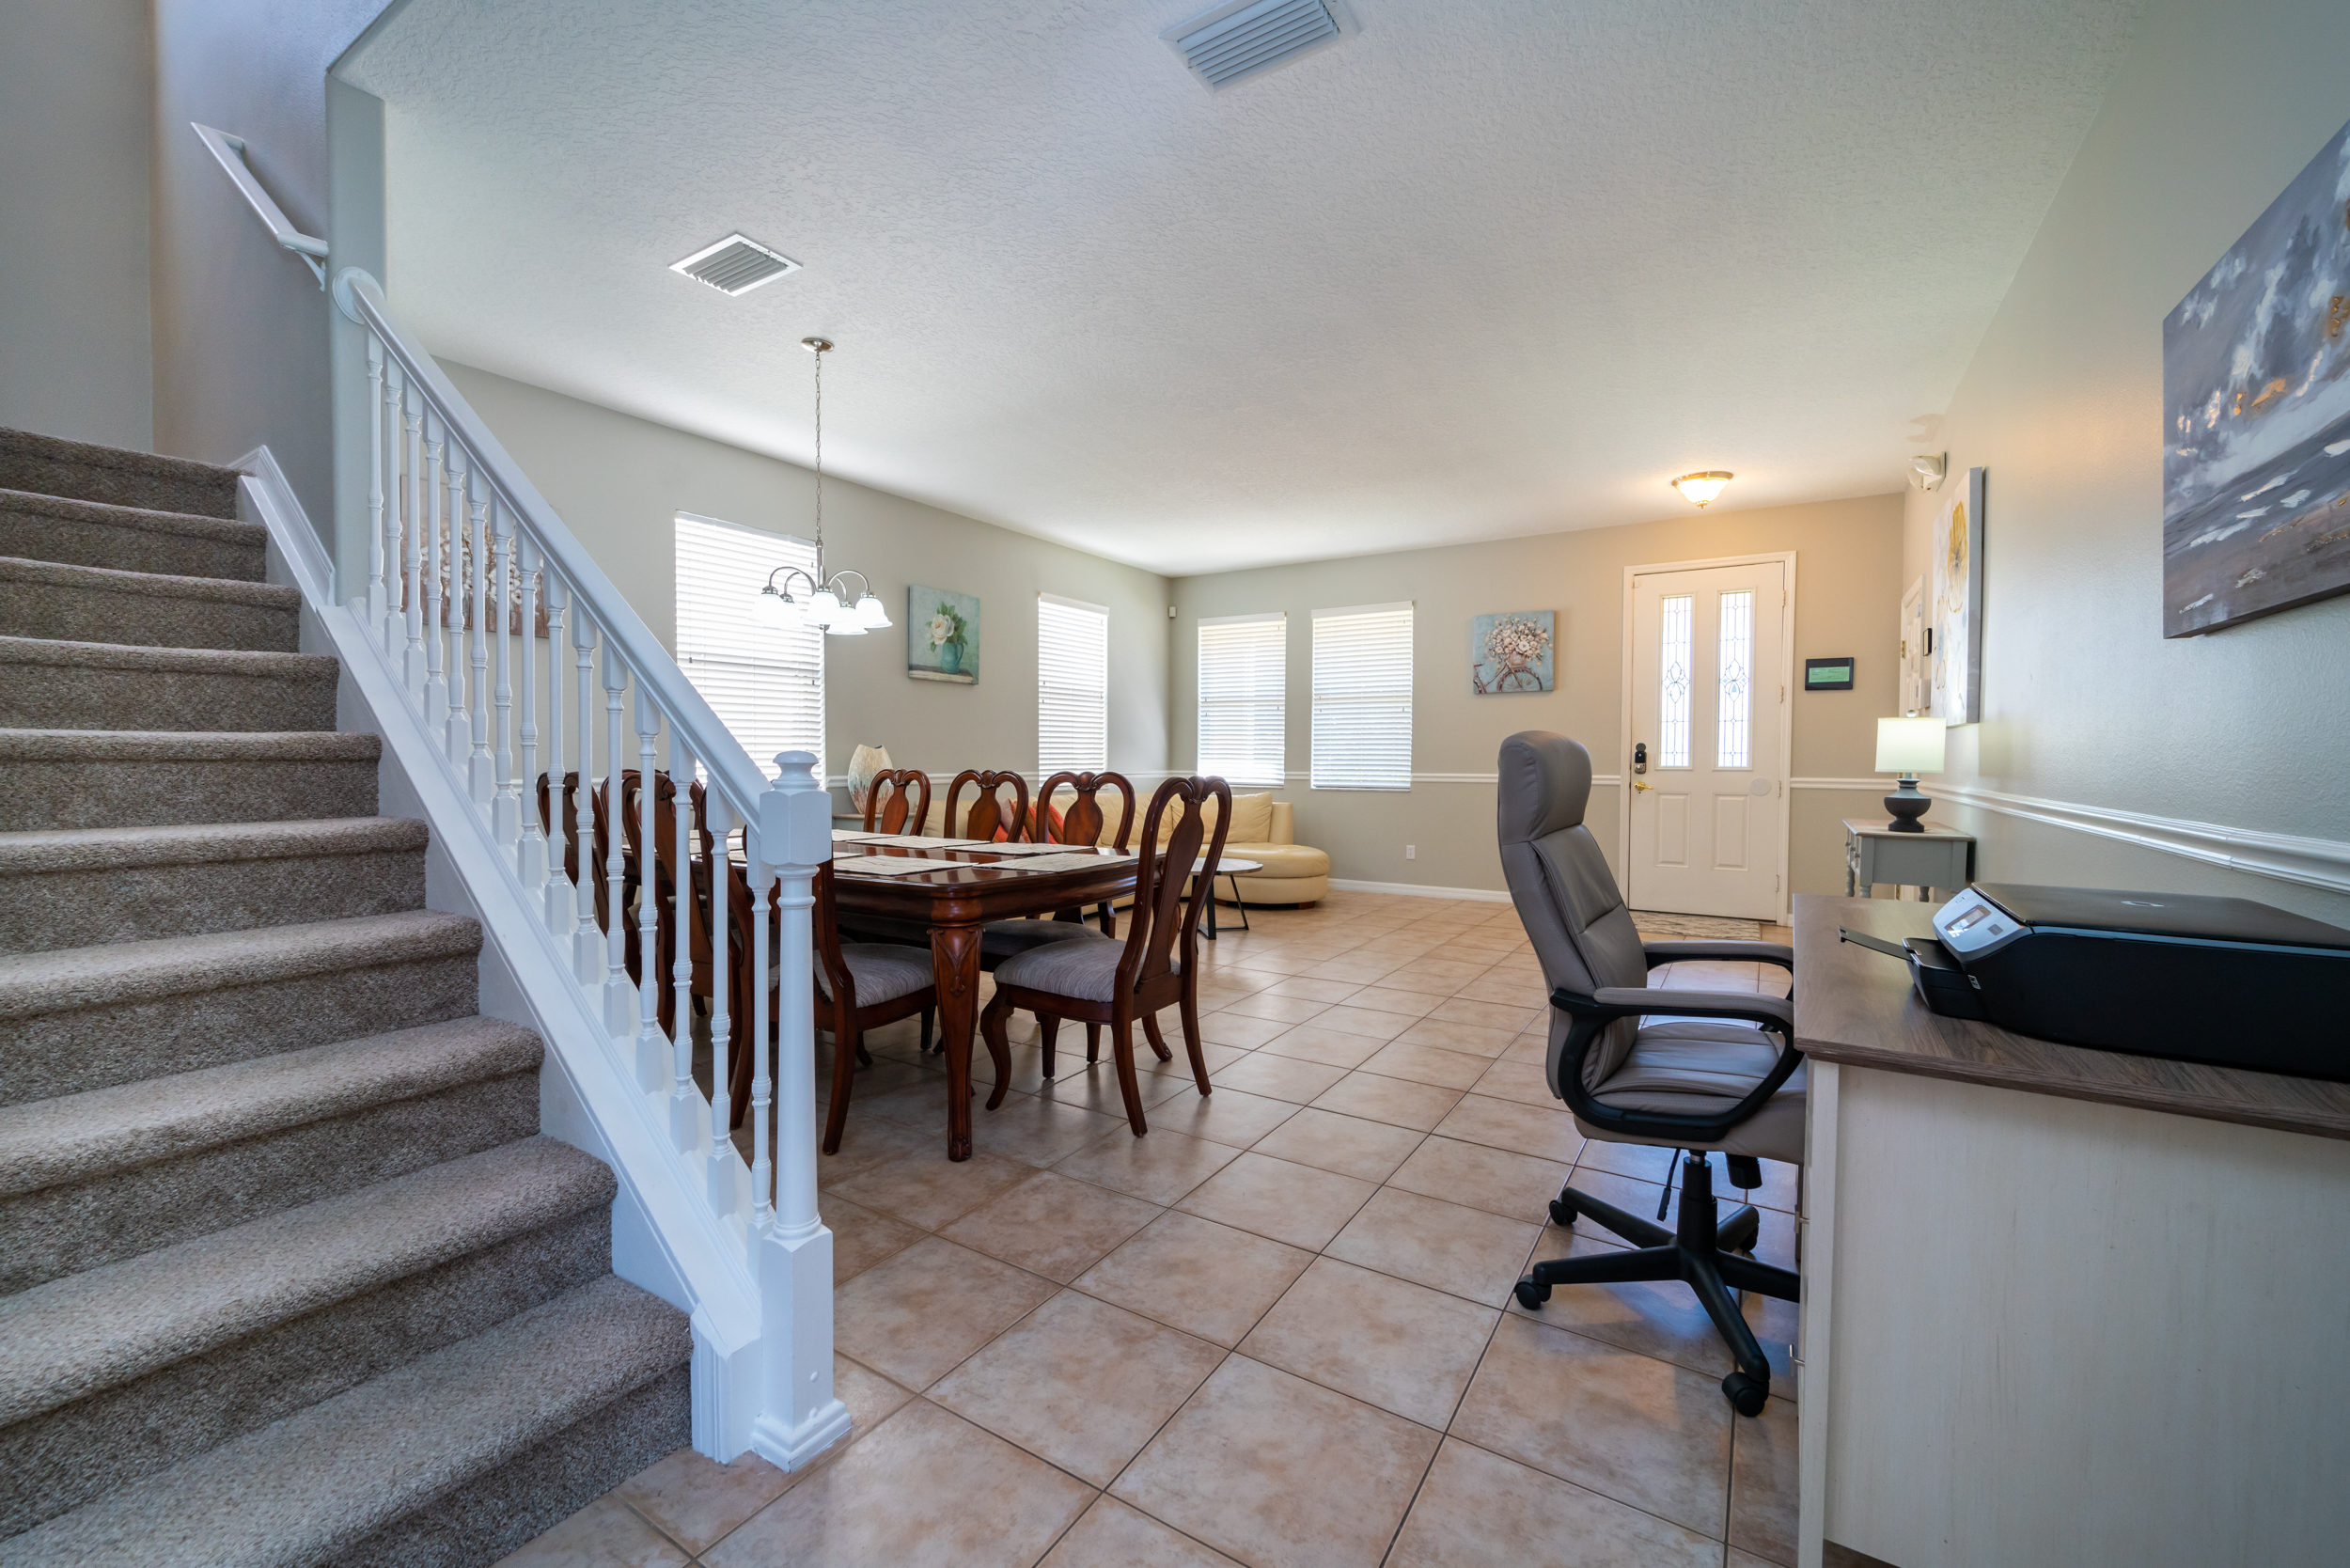 View to front door showing dining table and workstation